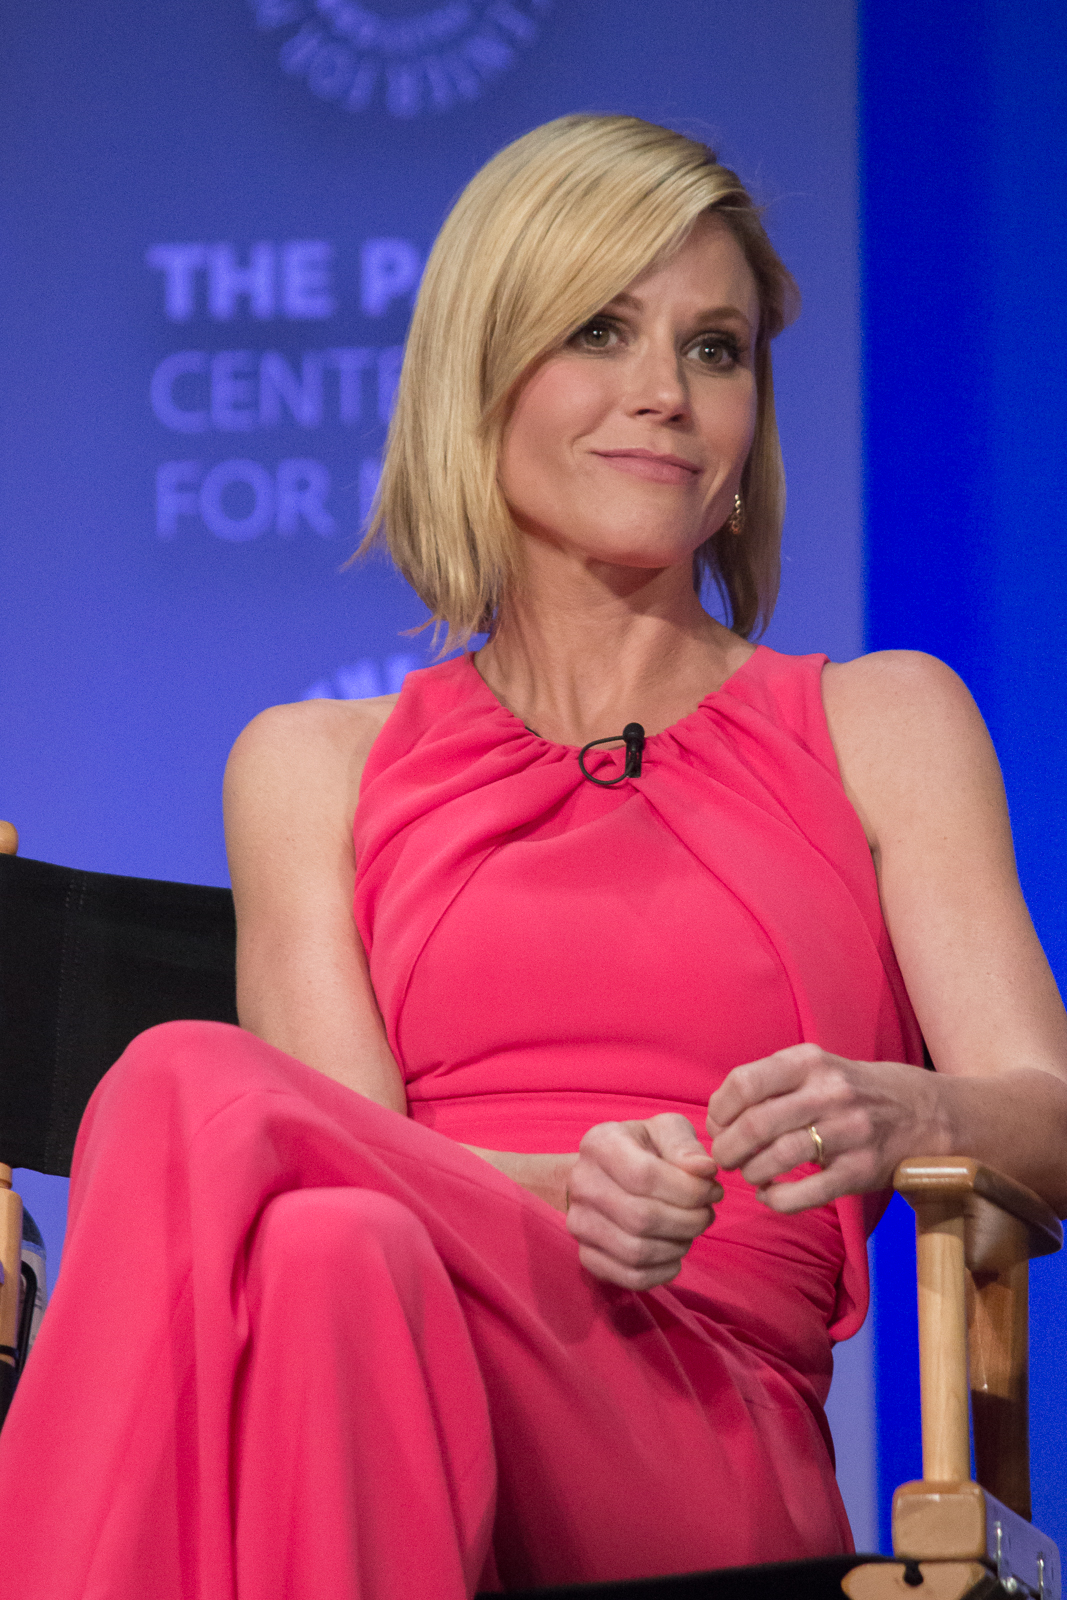 Julie Bowen body